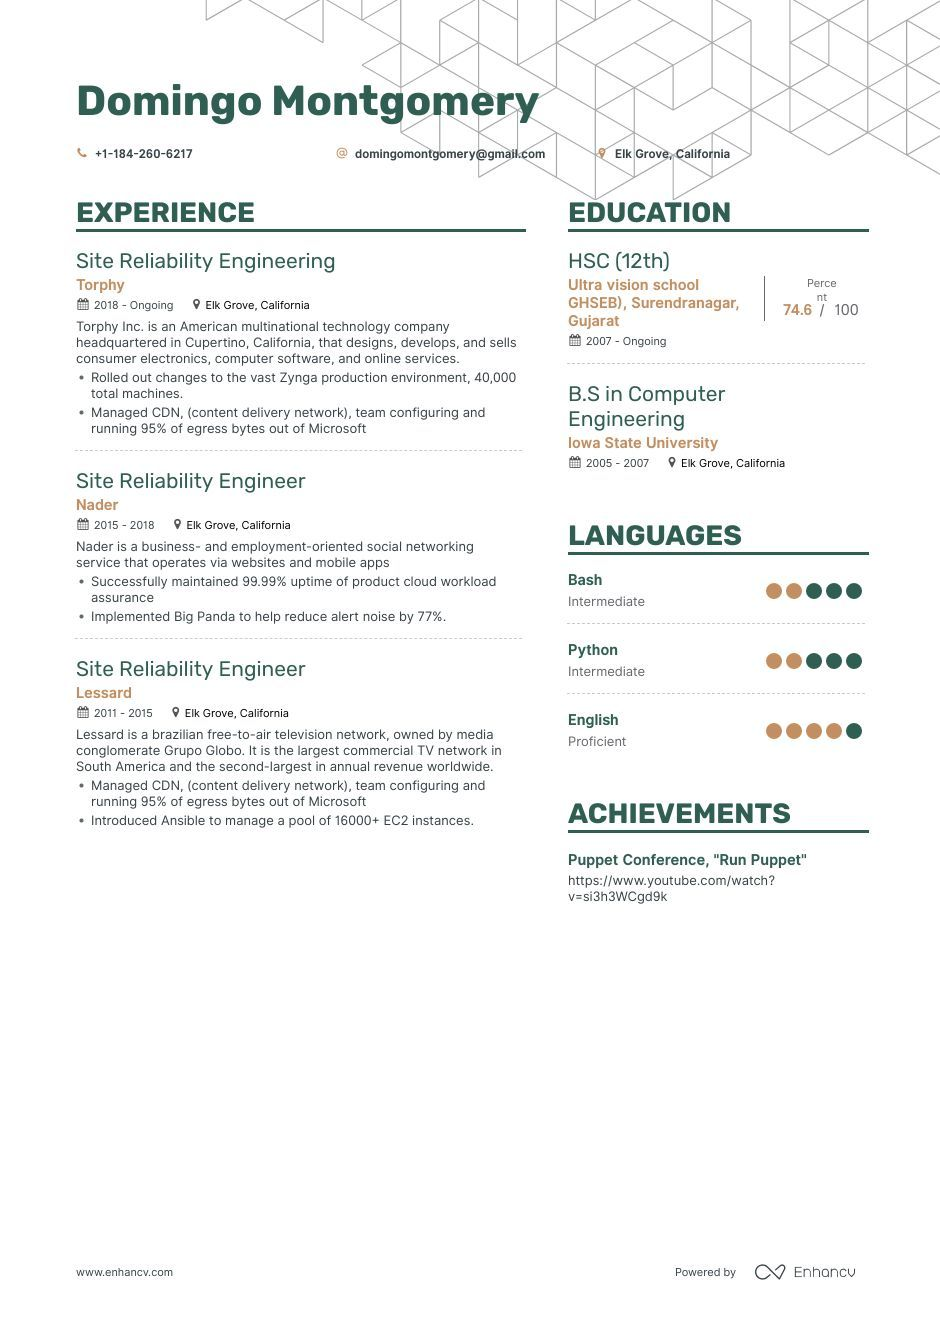 Site reliability engineer resume example and guide for